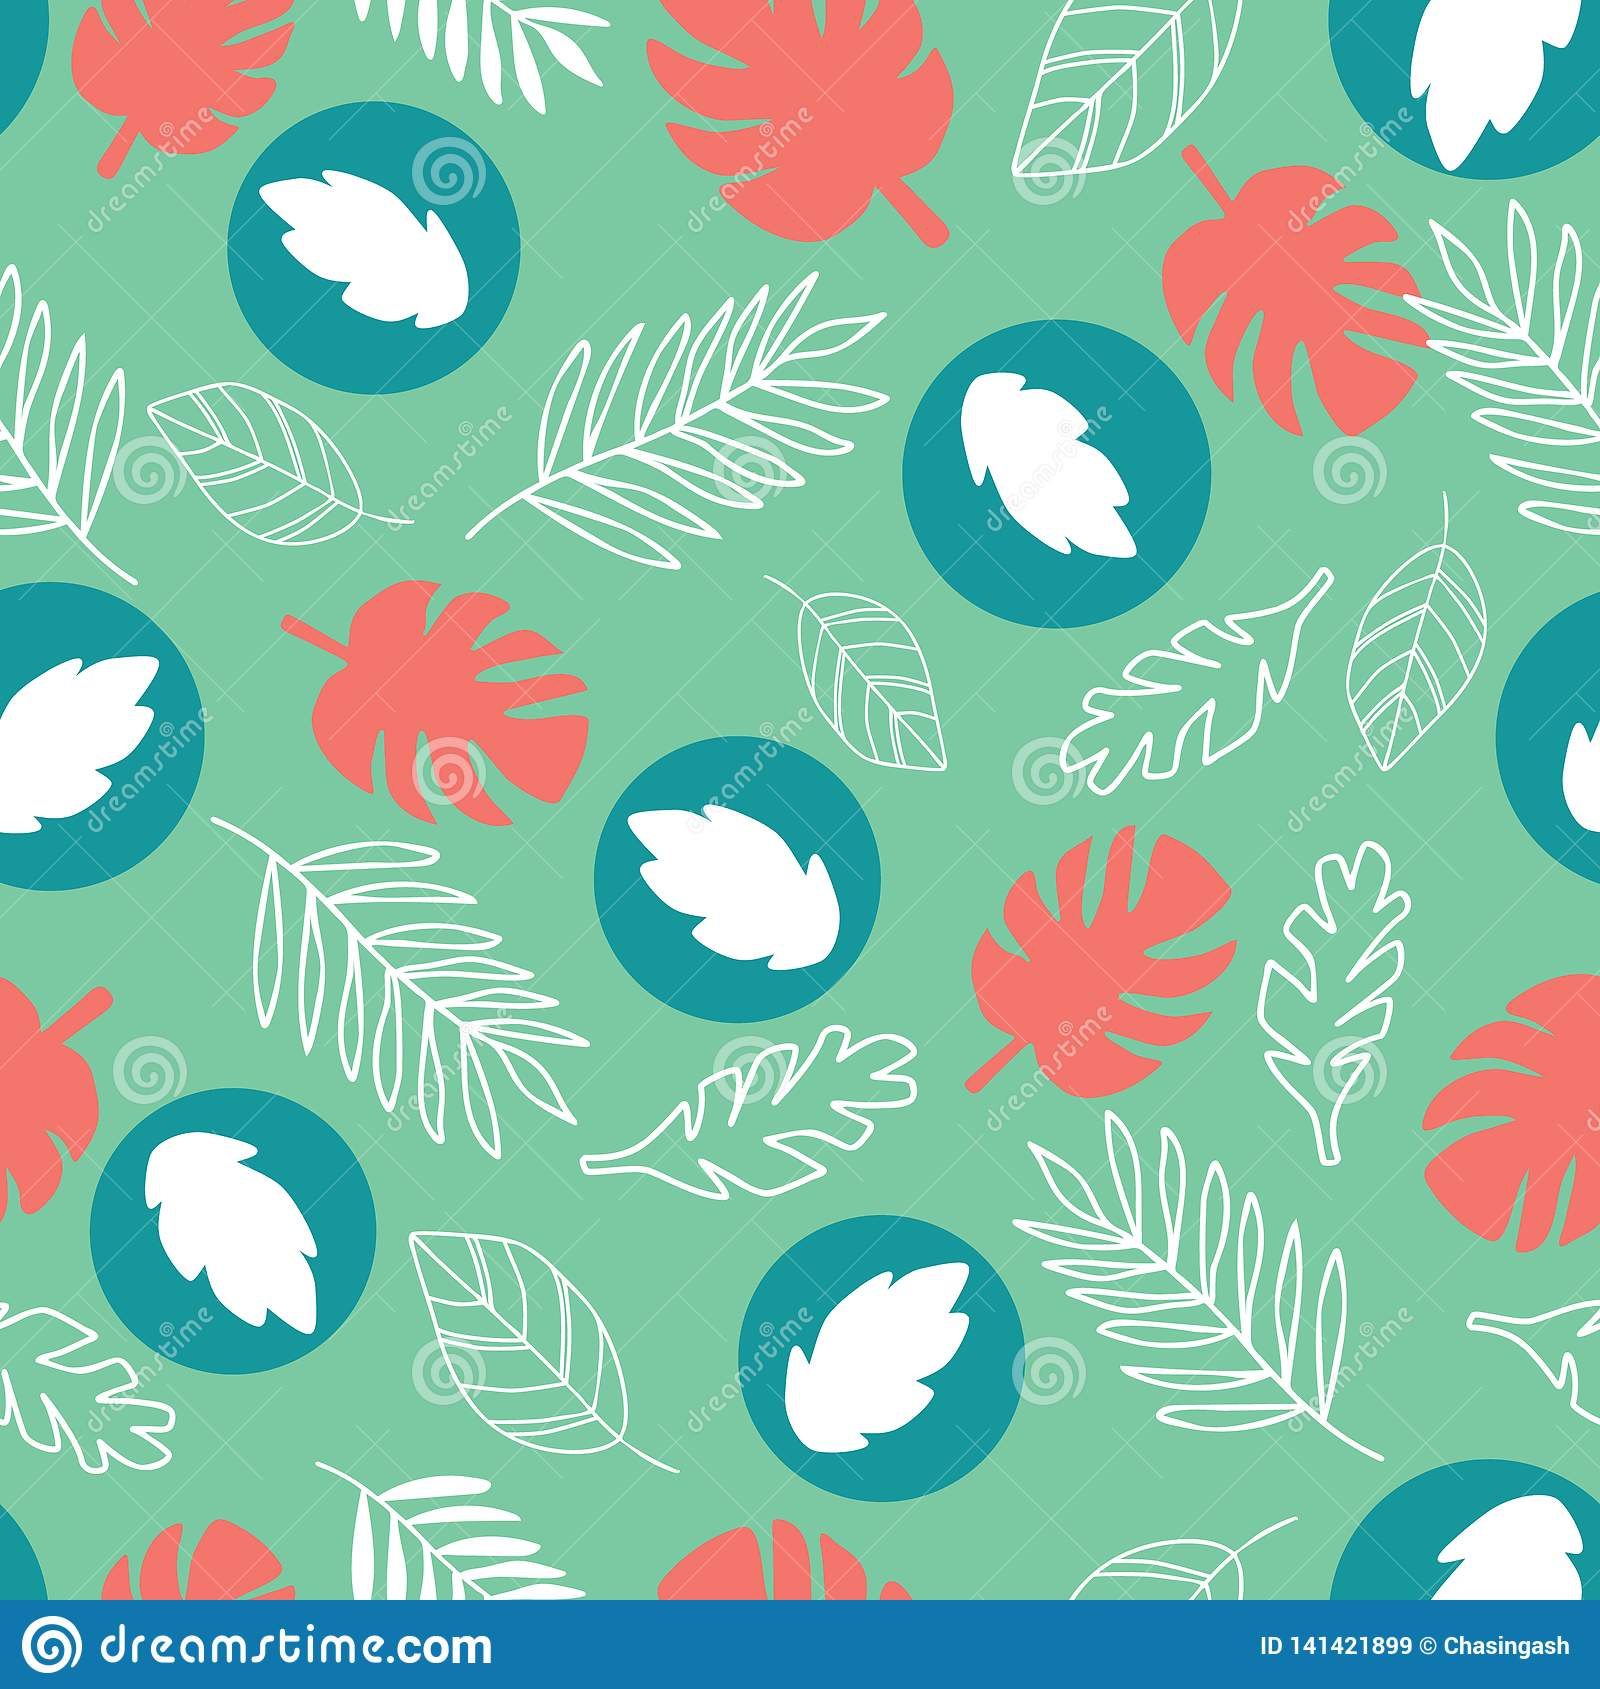 Exotic leaves on a green background. Tropical pattern with banana leaves.